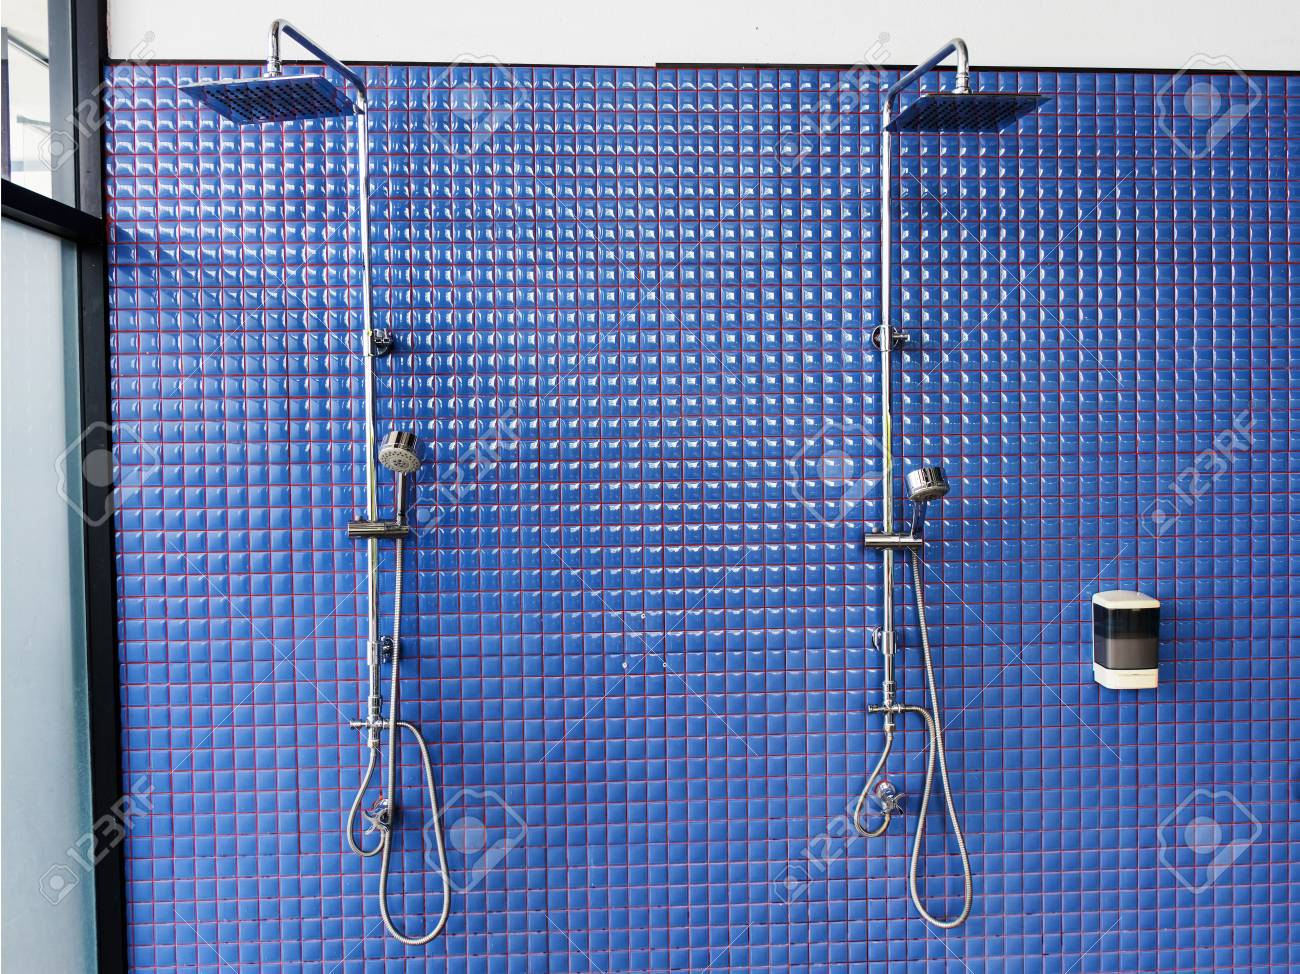 Public Shower On Blue Tile Wall Of Swimming Pool Stock Photo ...